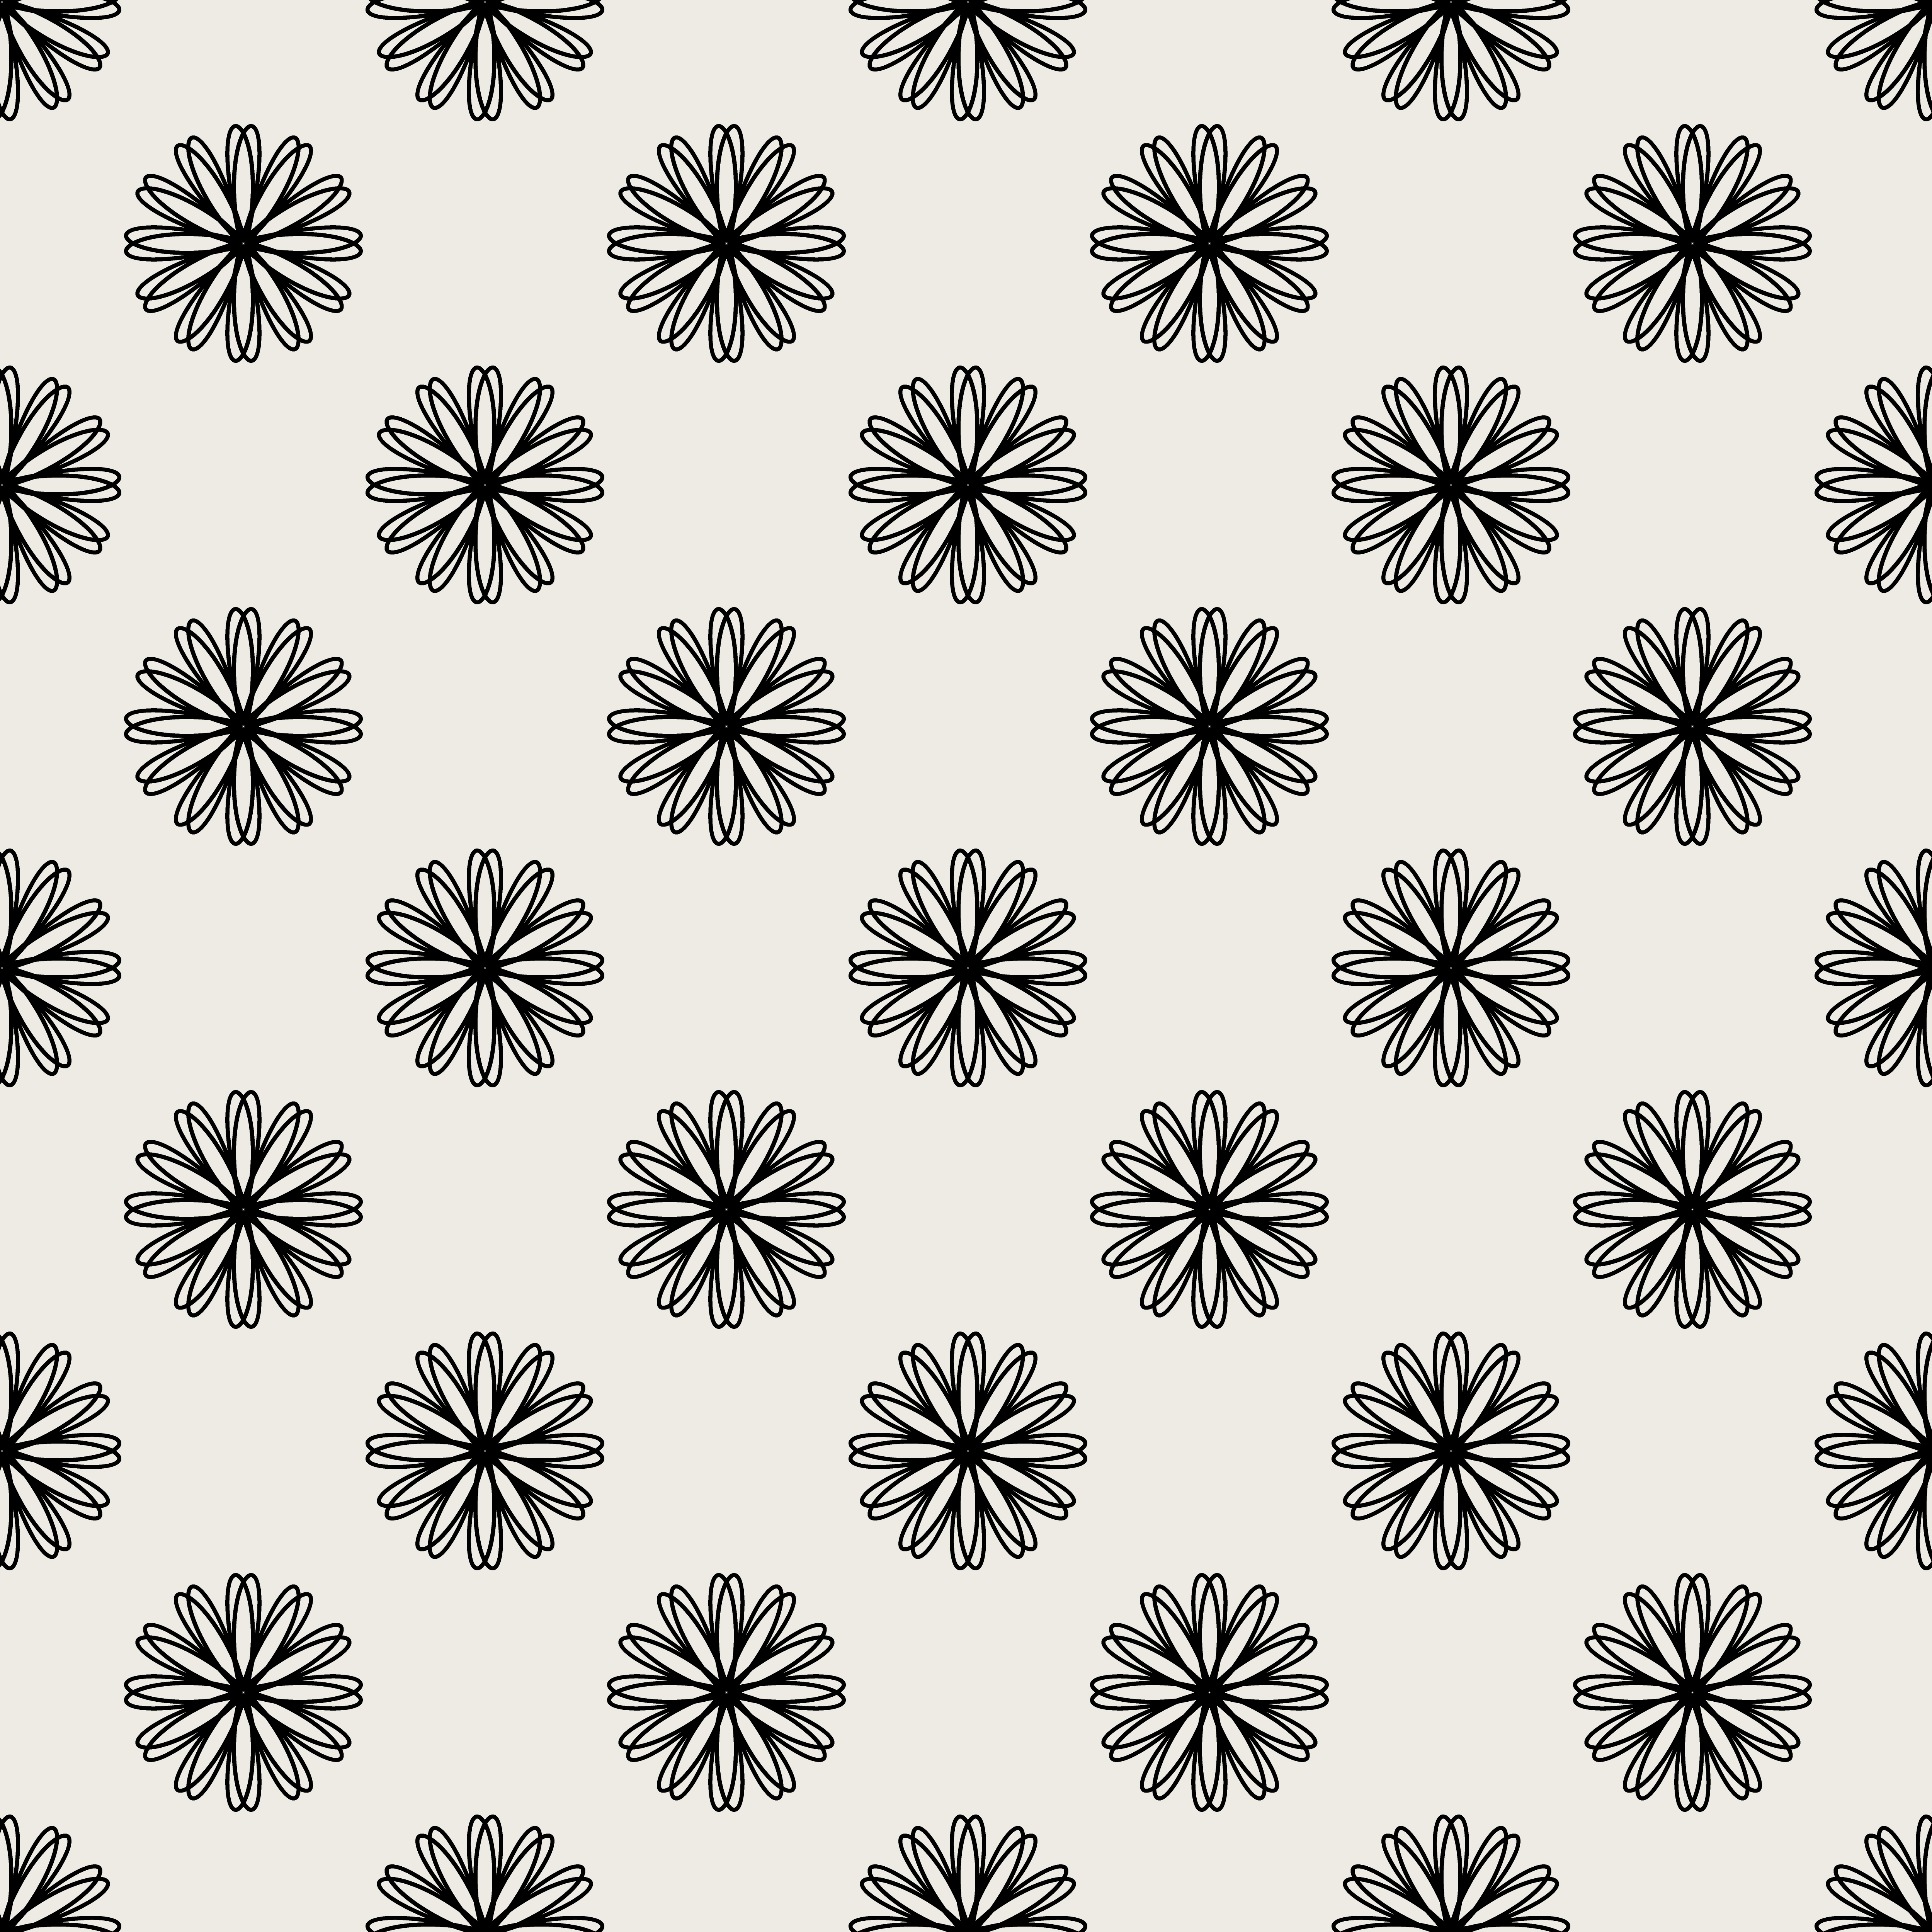 Seamless Pattern Background Modern Abstract And Classical Antique Concept Geometric Creative Design Stylish Theme Illustration Vector Black And White Color Floral And Flower Shape Download Free Vectors Clipart Graphics Vector